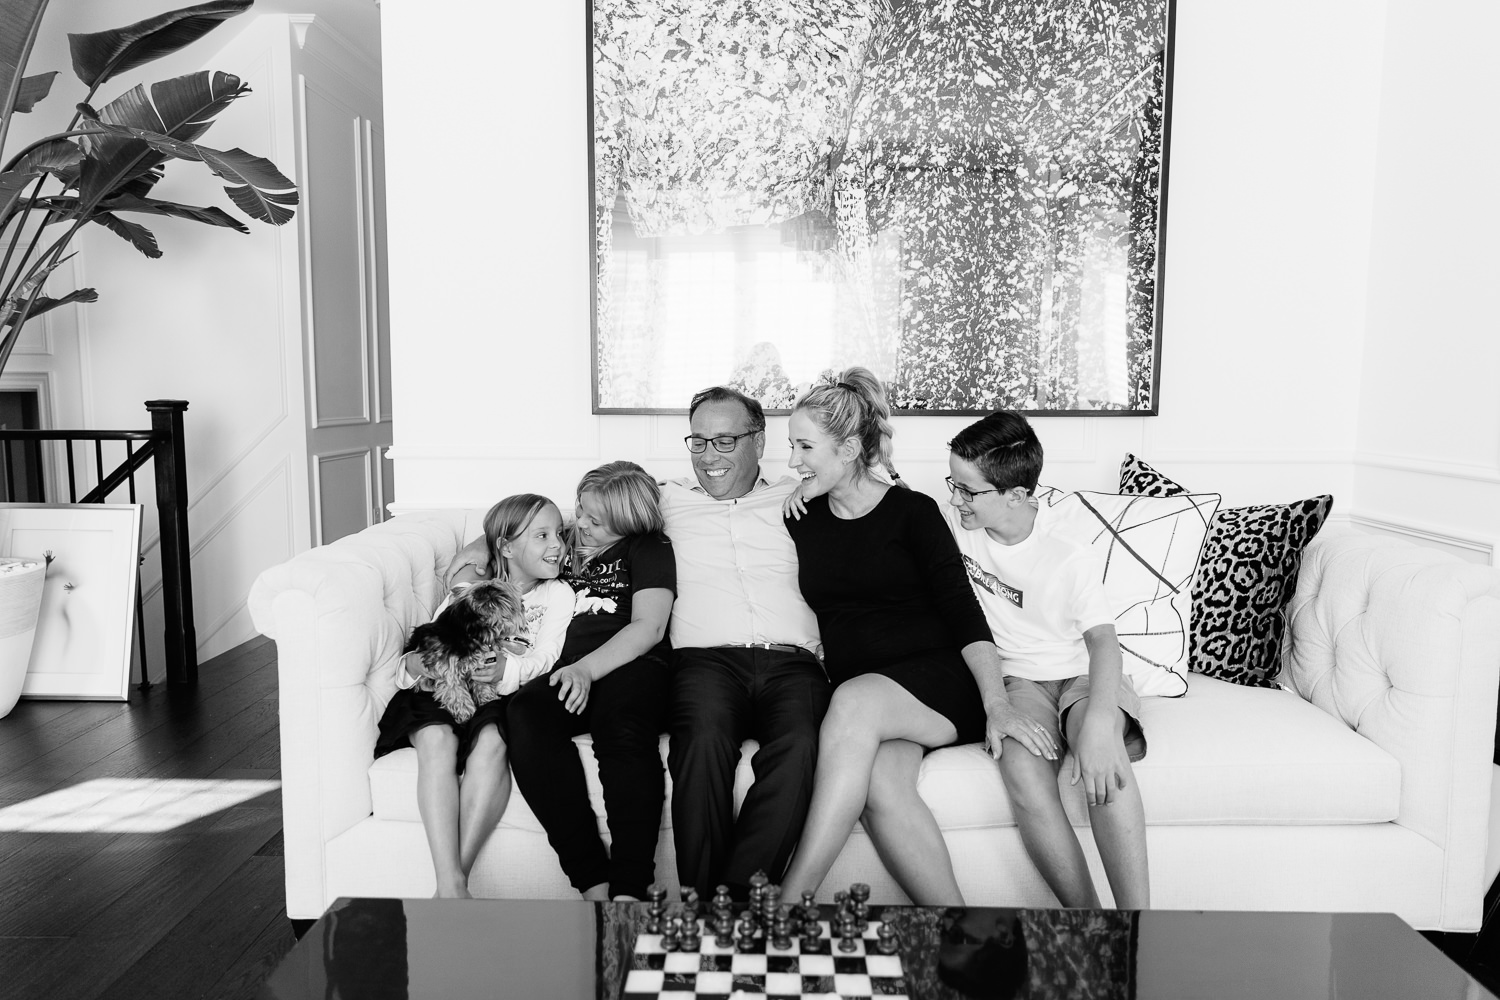 family of 5 sitting on couch together, smiling at one another, 2 daughters 1 son, 8 year old girl holding yorkie dog in lap - Newmarket In-Home Photos